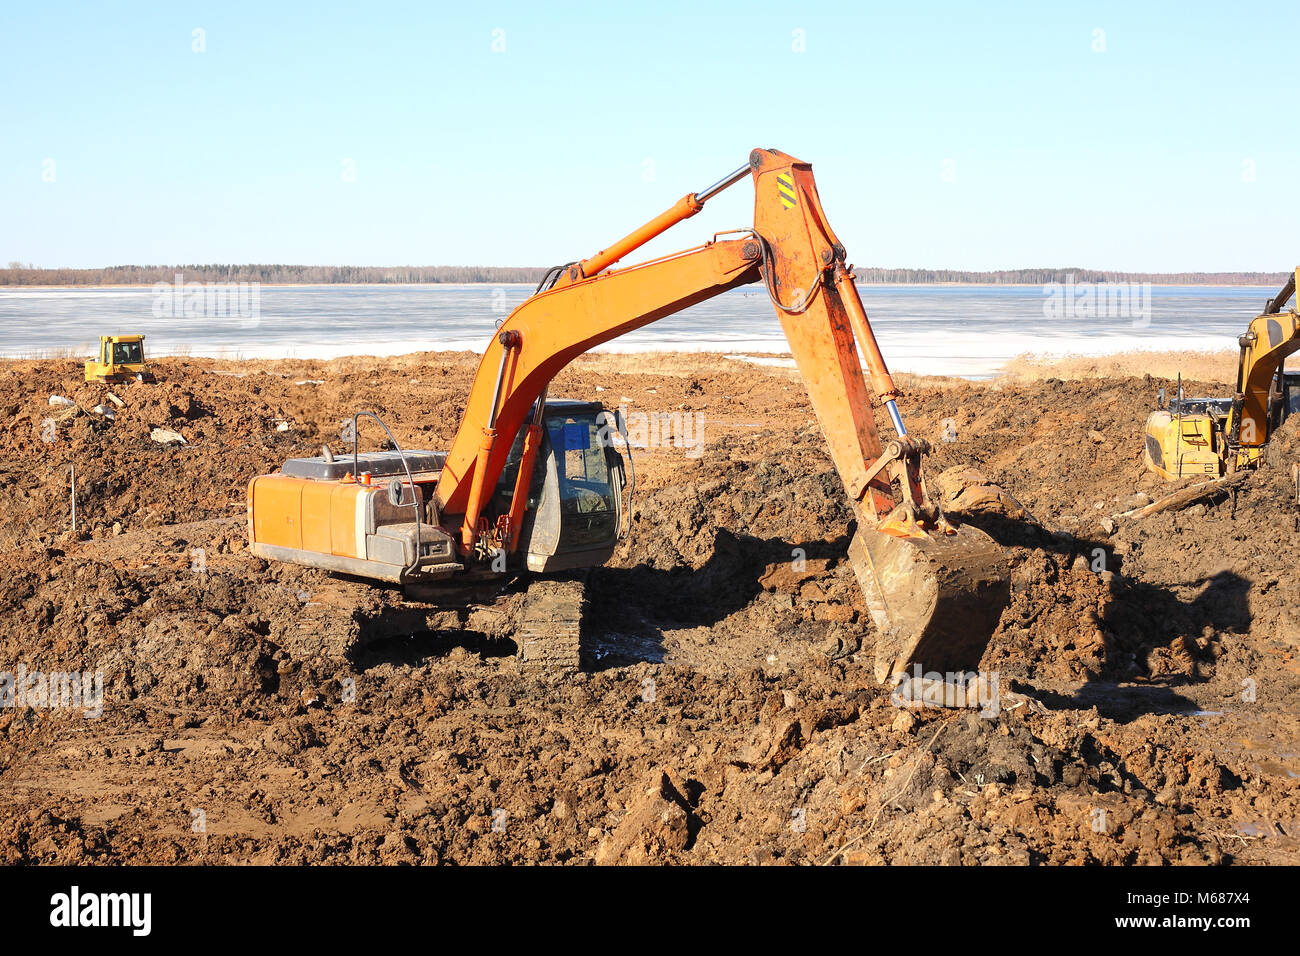 Construction of moorings for the parking of boats - Excavators work in dirt - Stock Image